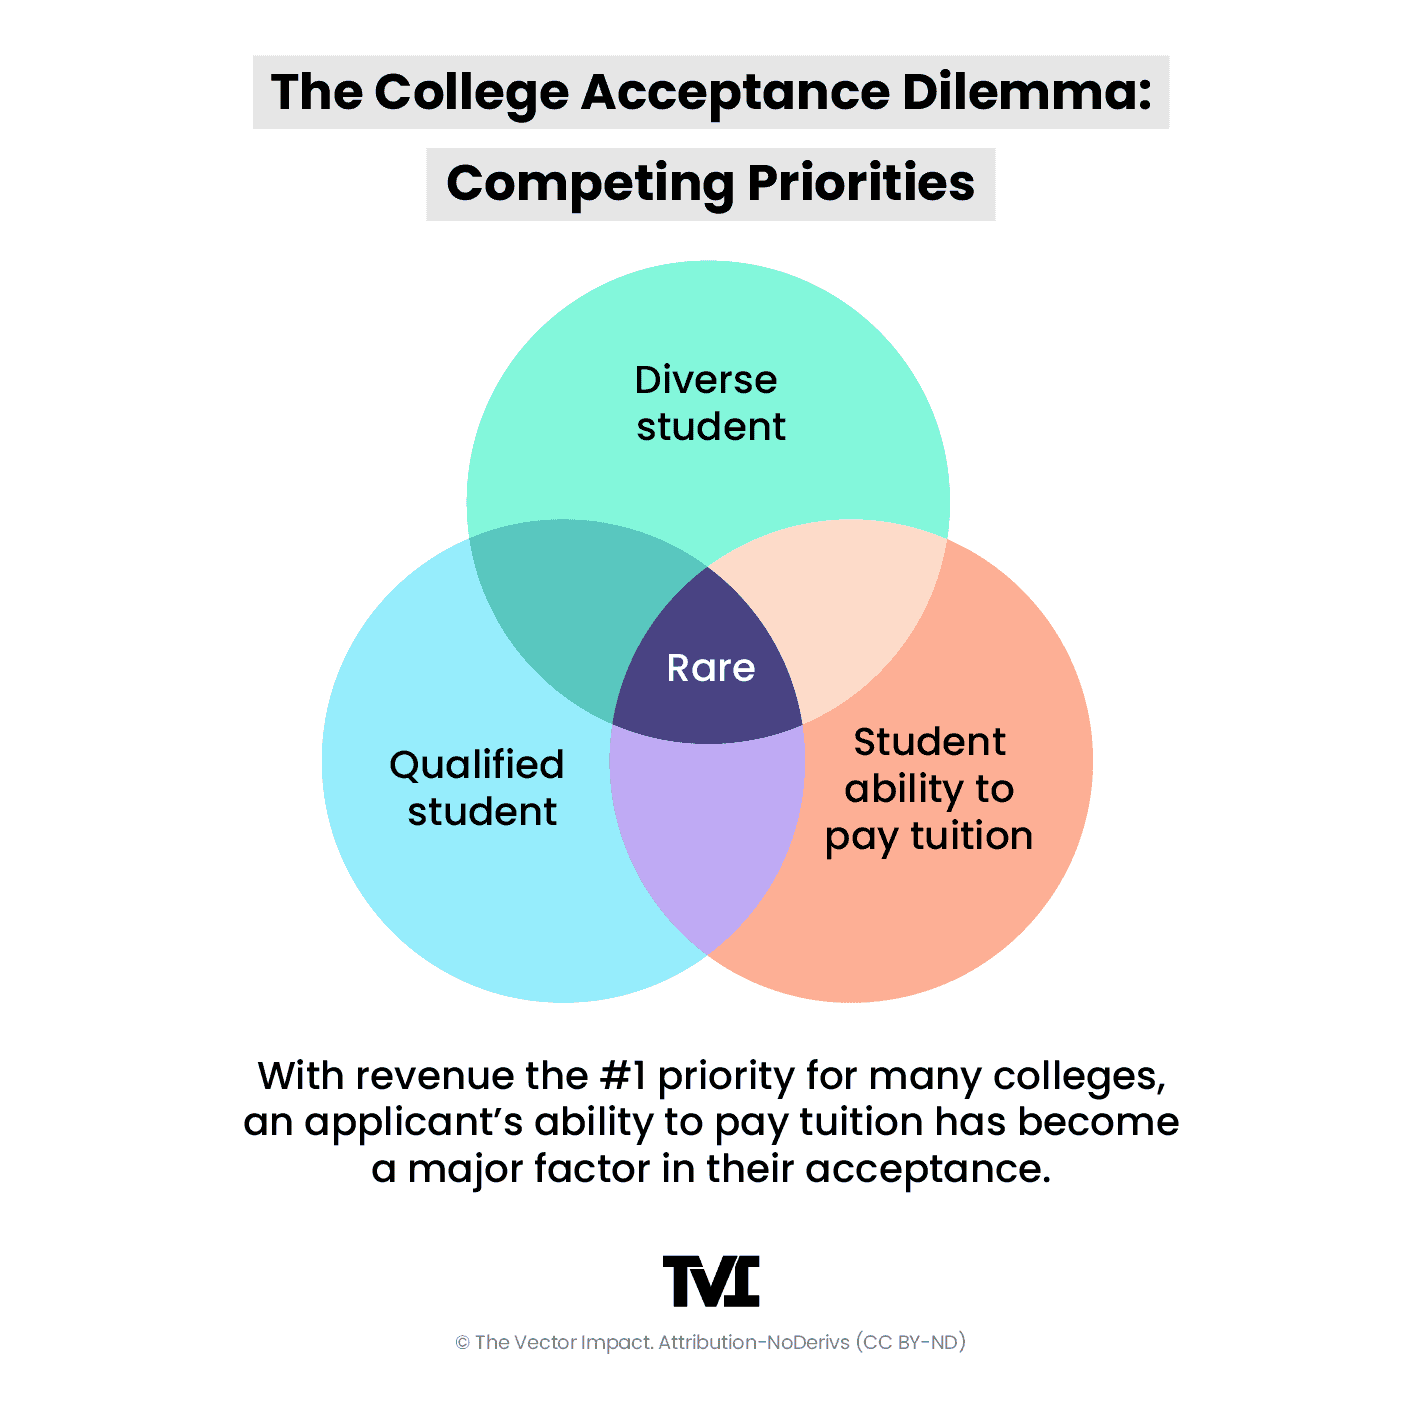 Venn diagram: diverse student, qualified student, and student ability to pay (finding all 3 is exceptionally rare)